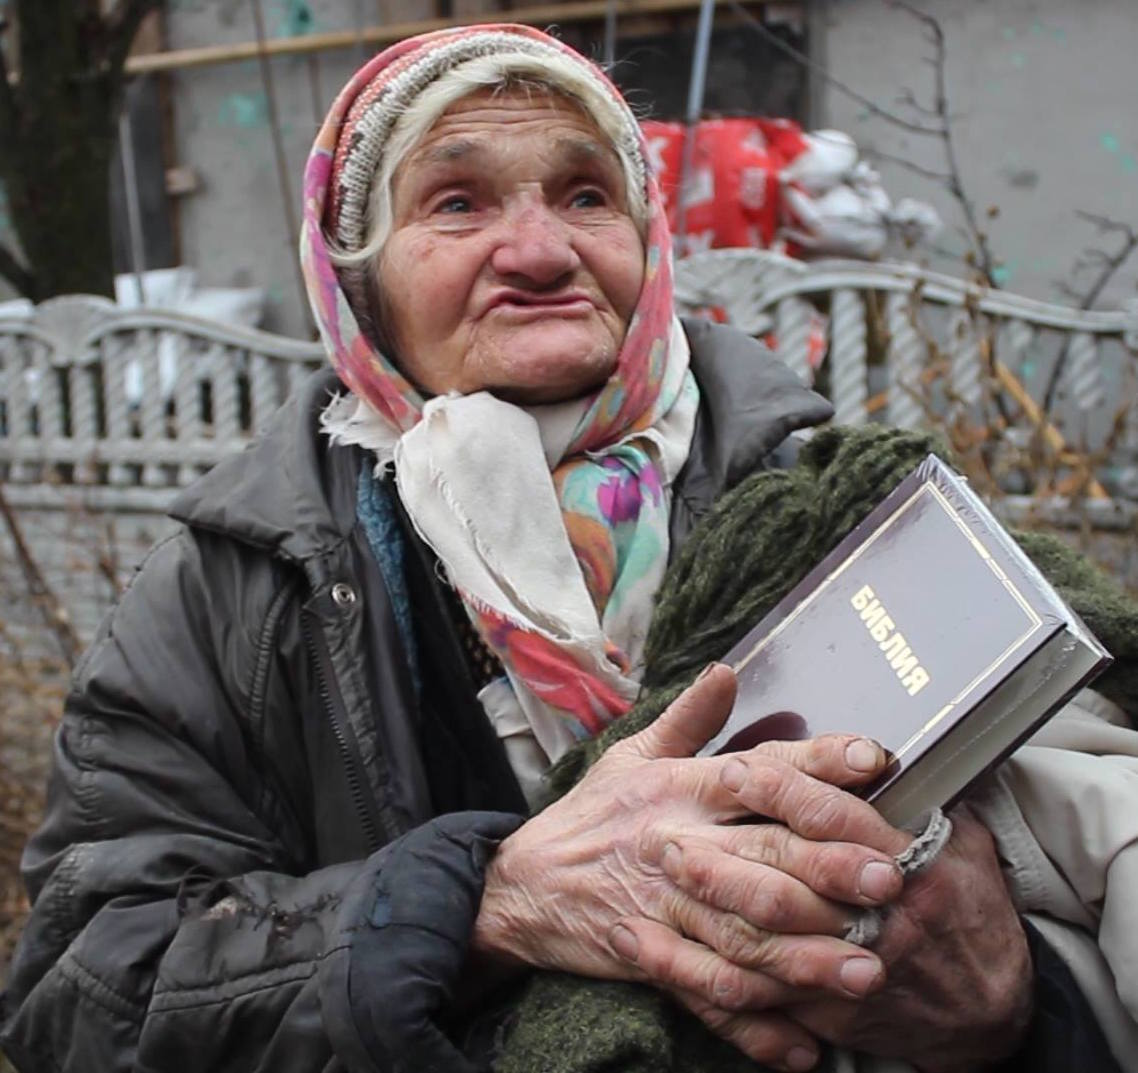 Elderly refugee woman holding a Bible in eastern Ukraine